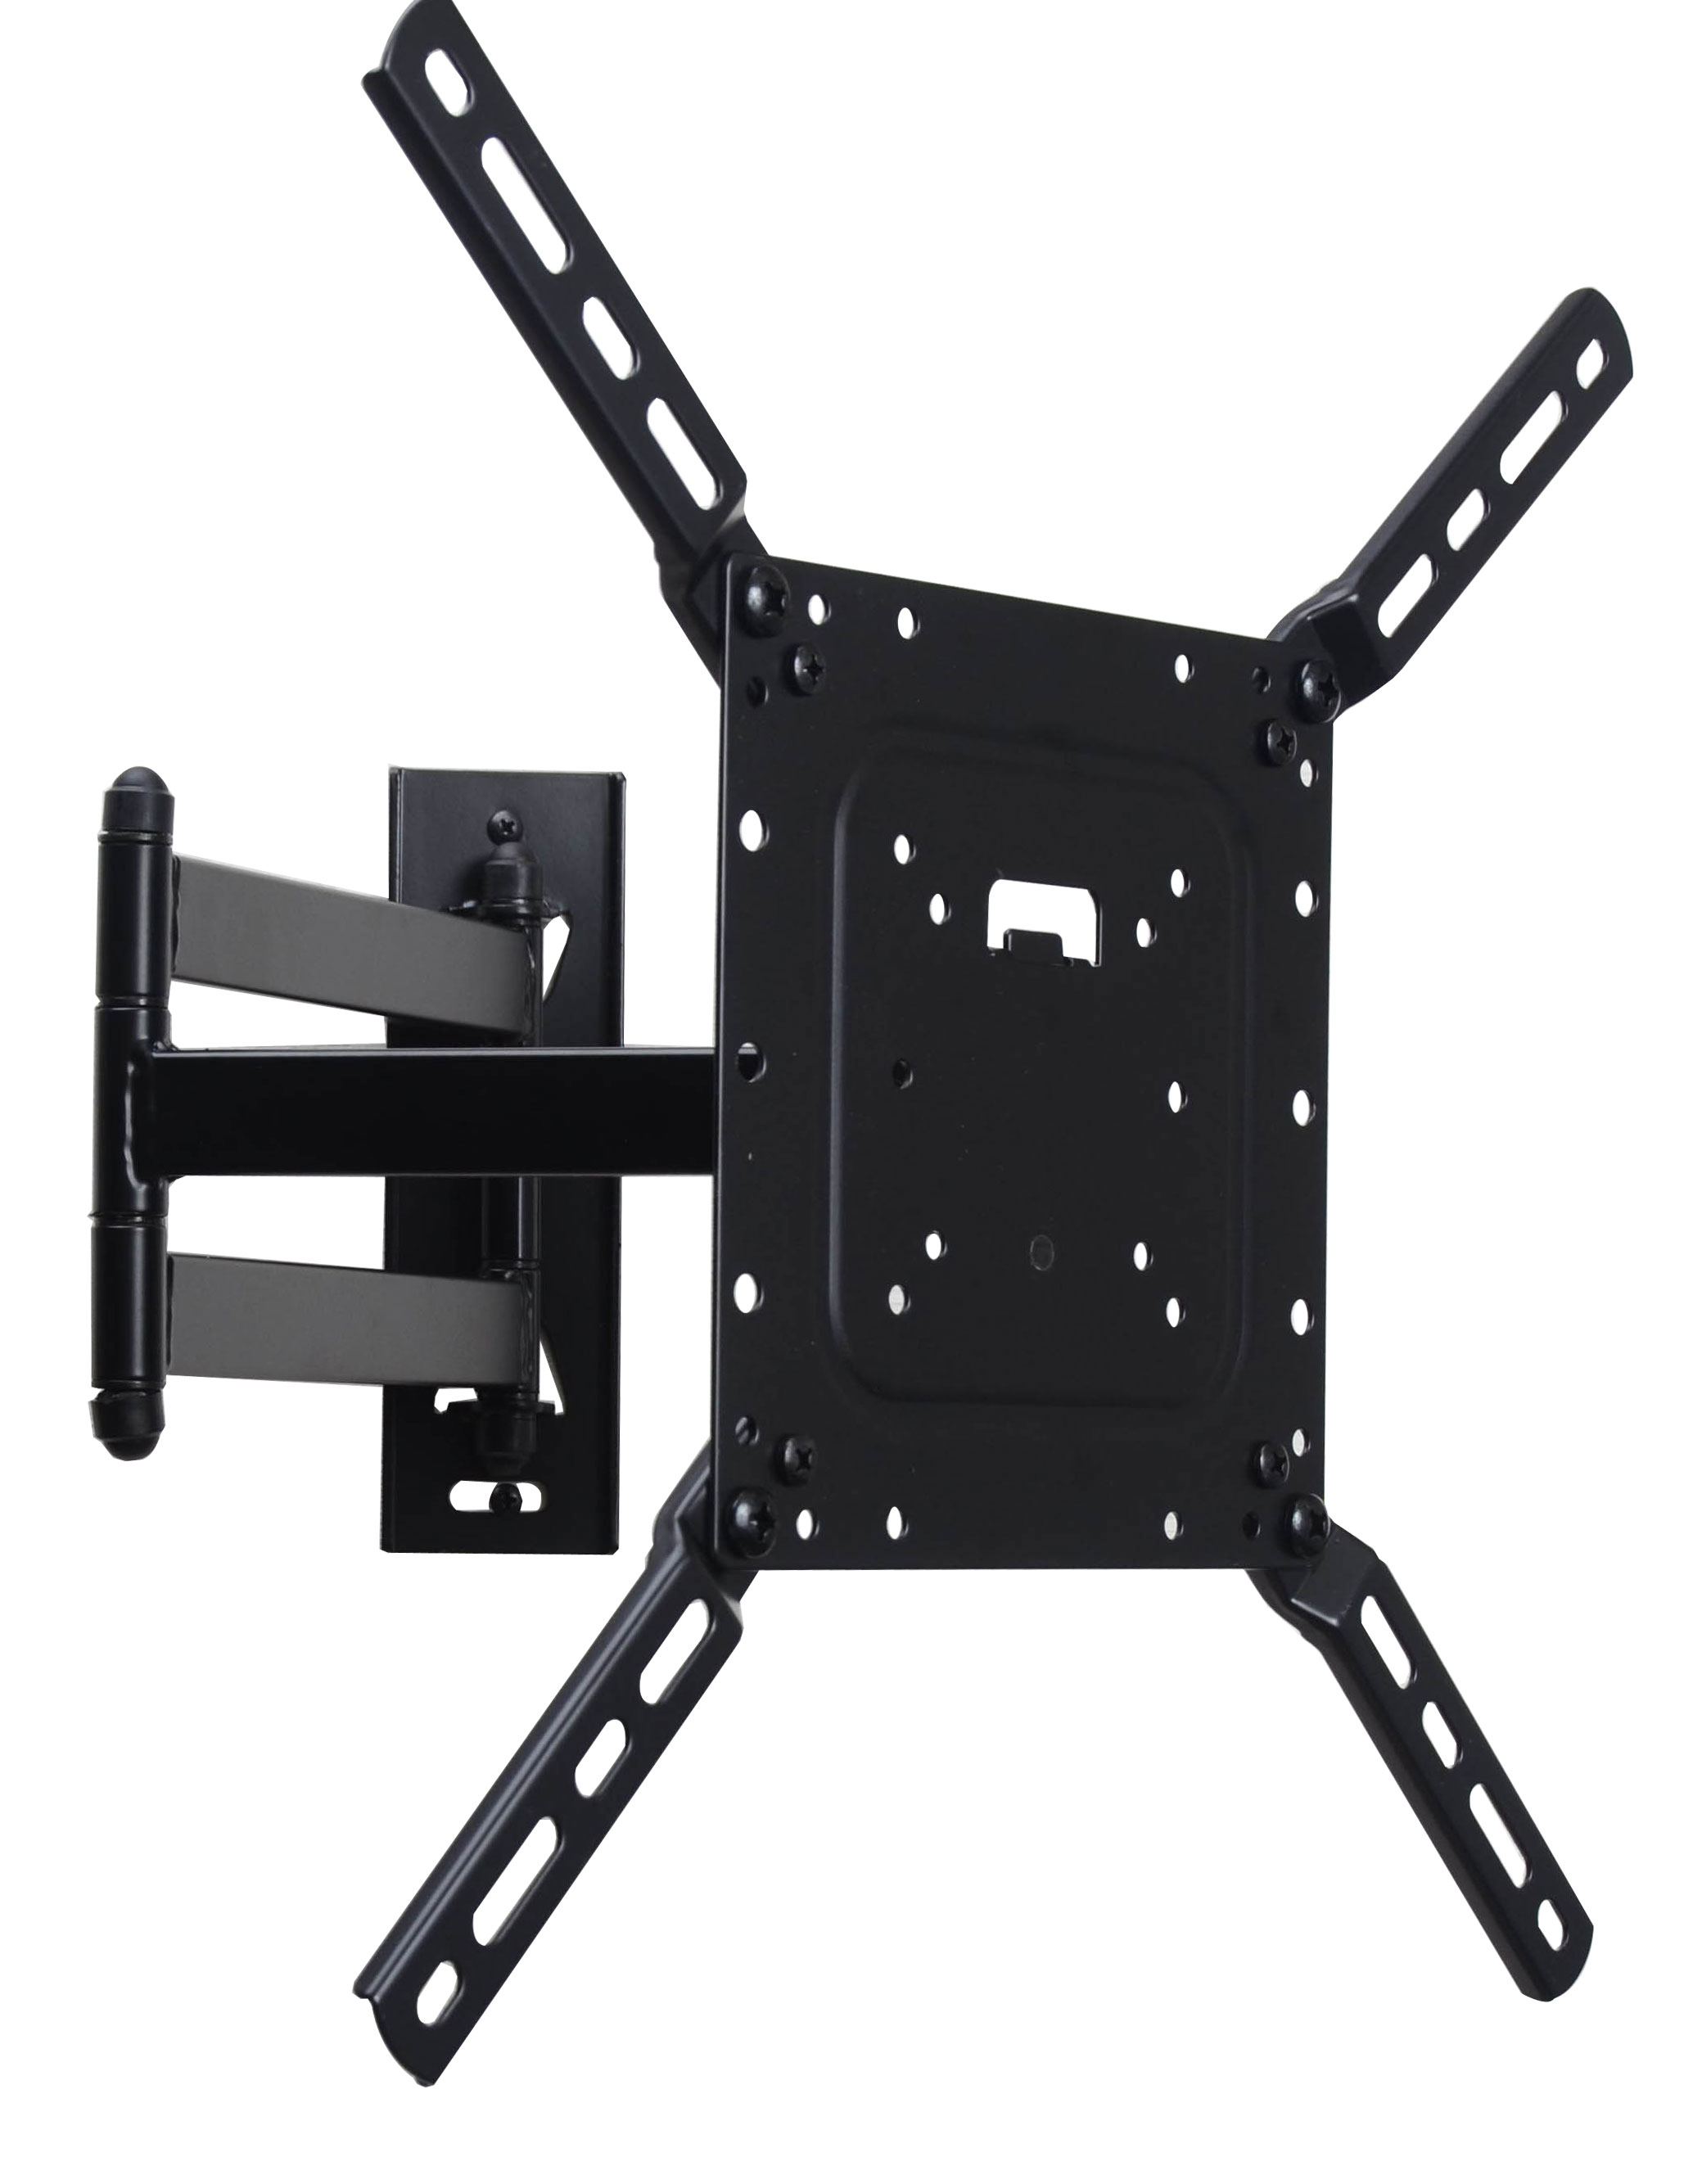 How to Choose A Wall Mount?